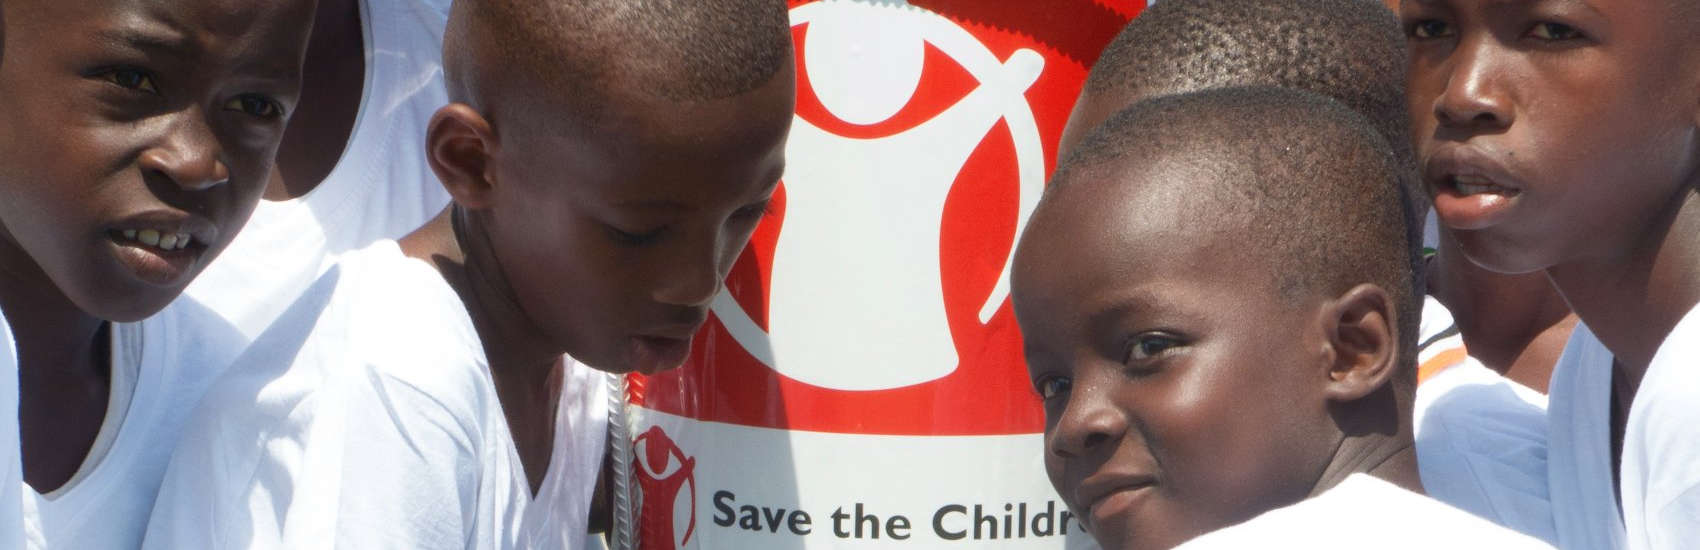 Save the children helped keep children free from Ebola in Guinea.